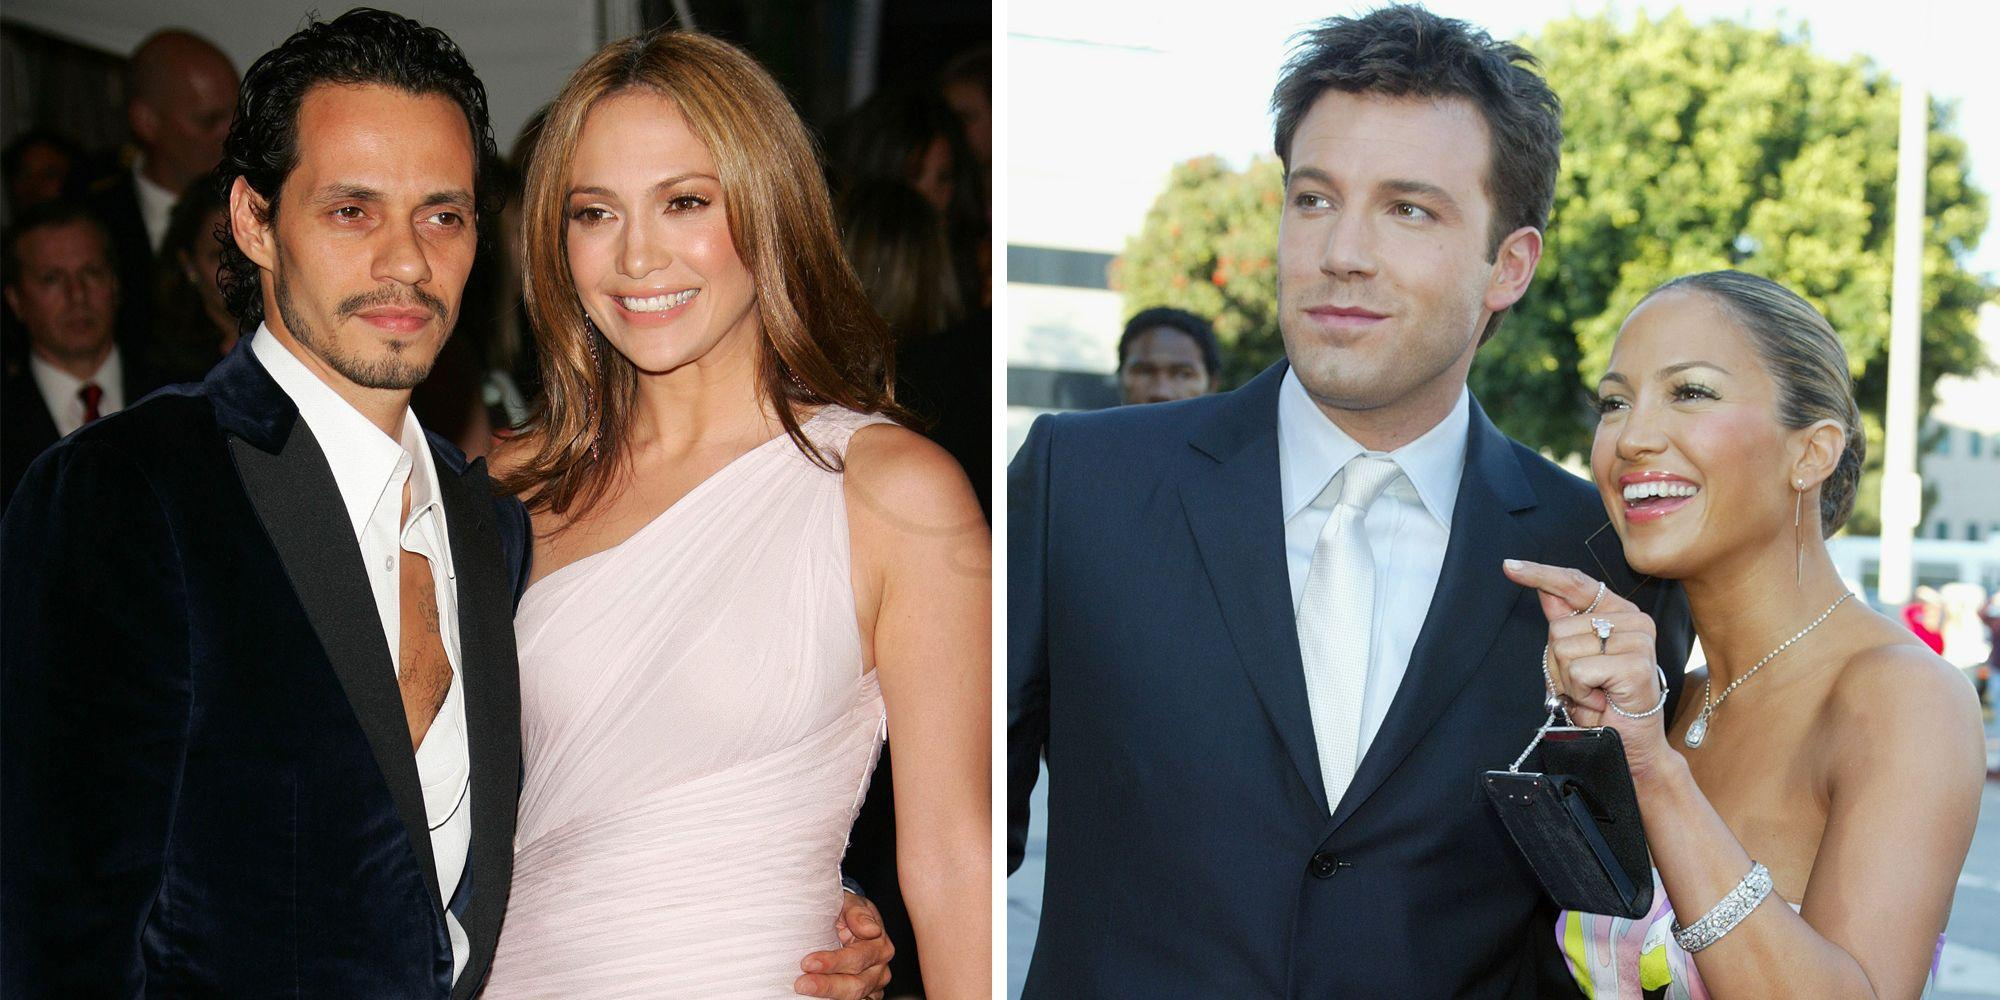 Jennifer Lopez And Ben Affleck: Here's How Her Ex Marc Anthony Feels About Their Reunion!